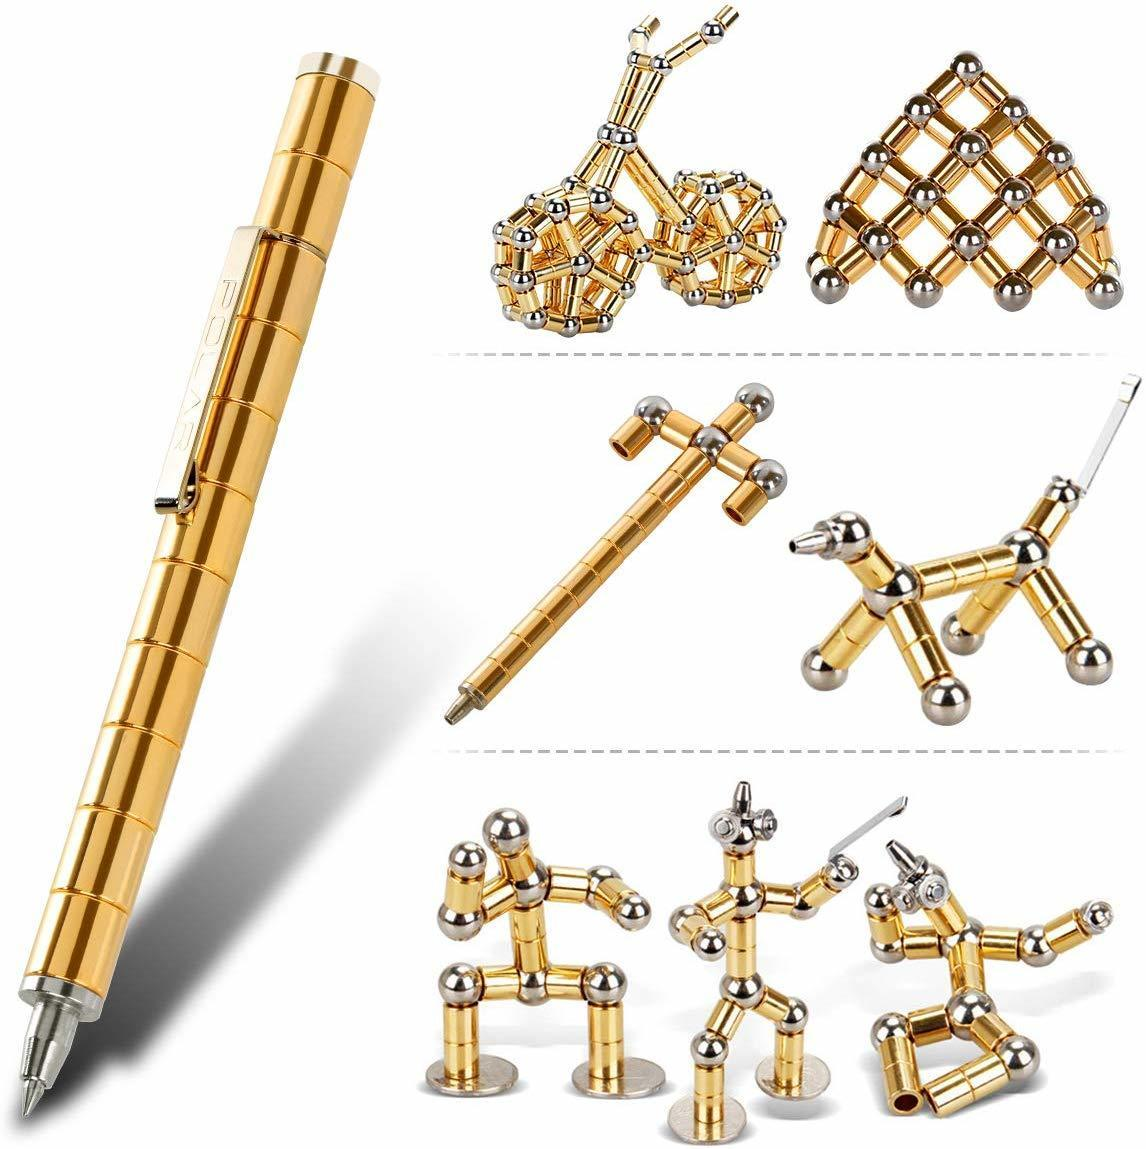 Magnetic Pen Magnets DIY Toys Fidget Toys Casual Stress Relief Gift Gold/Silver